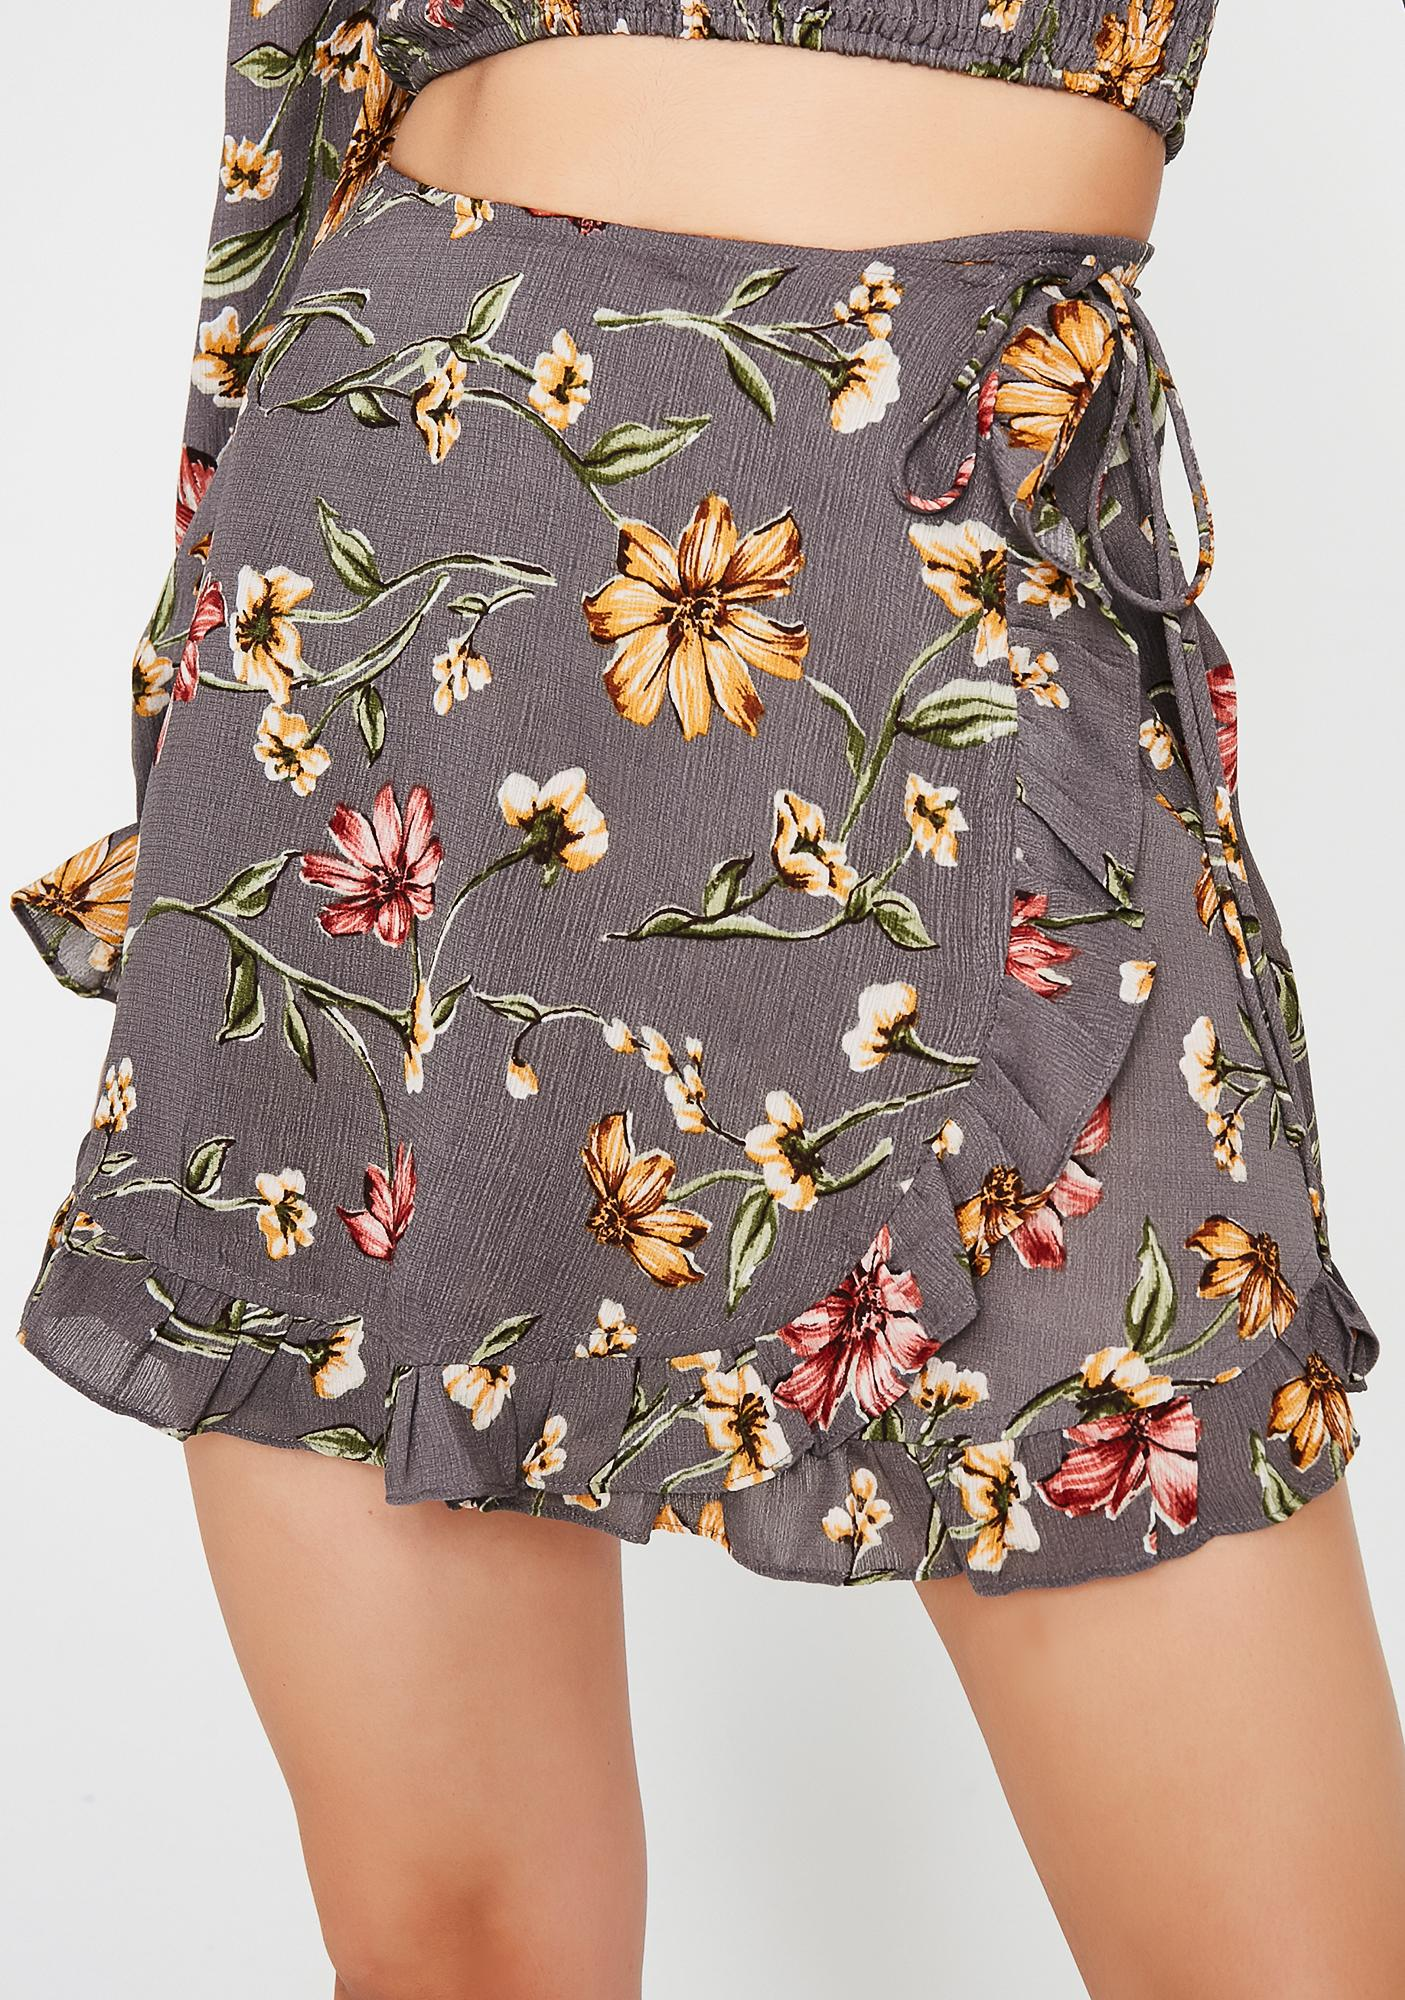 What The Flower Wrap Skirt